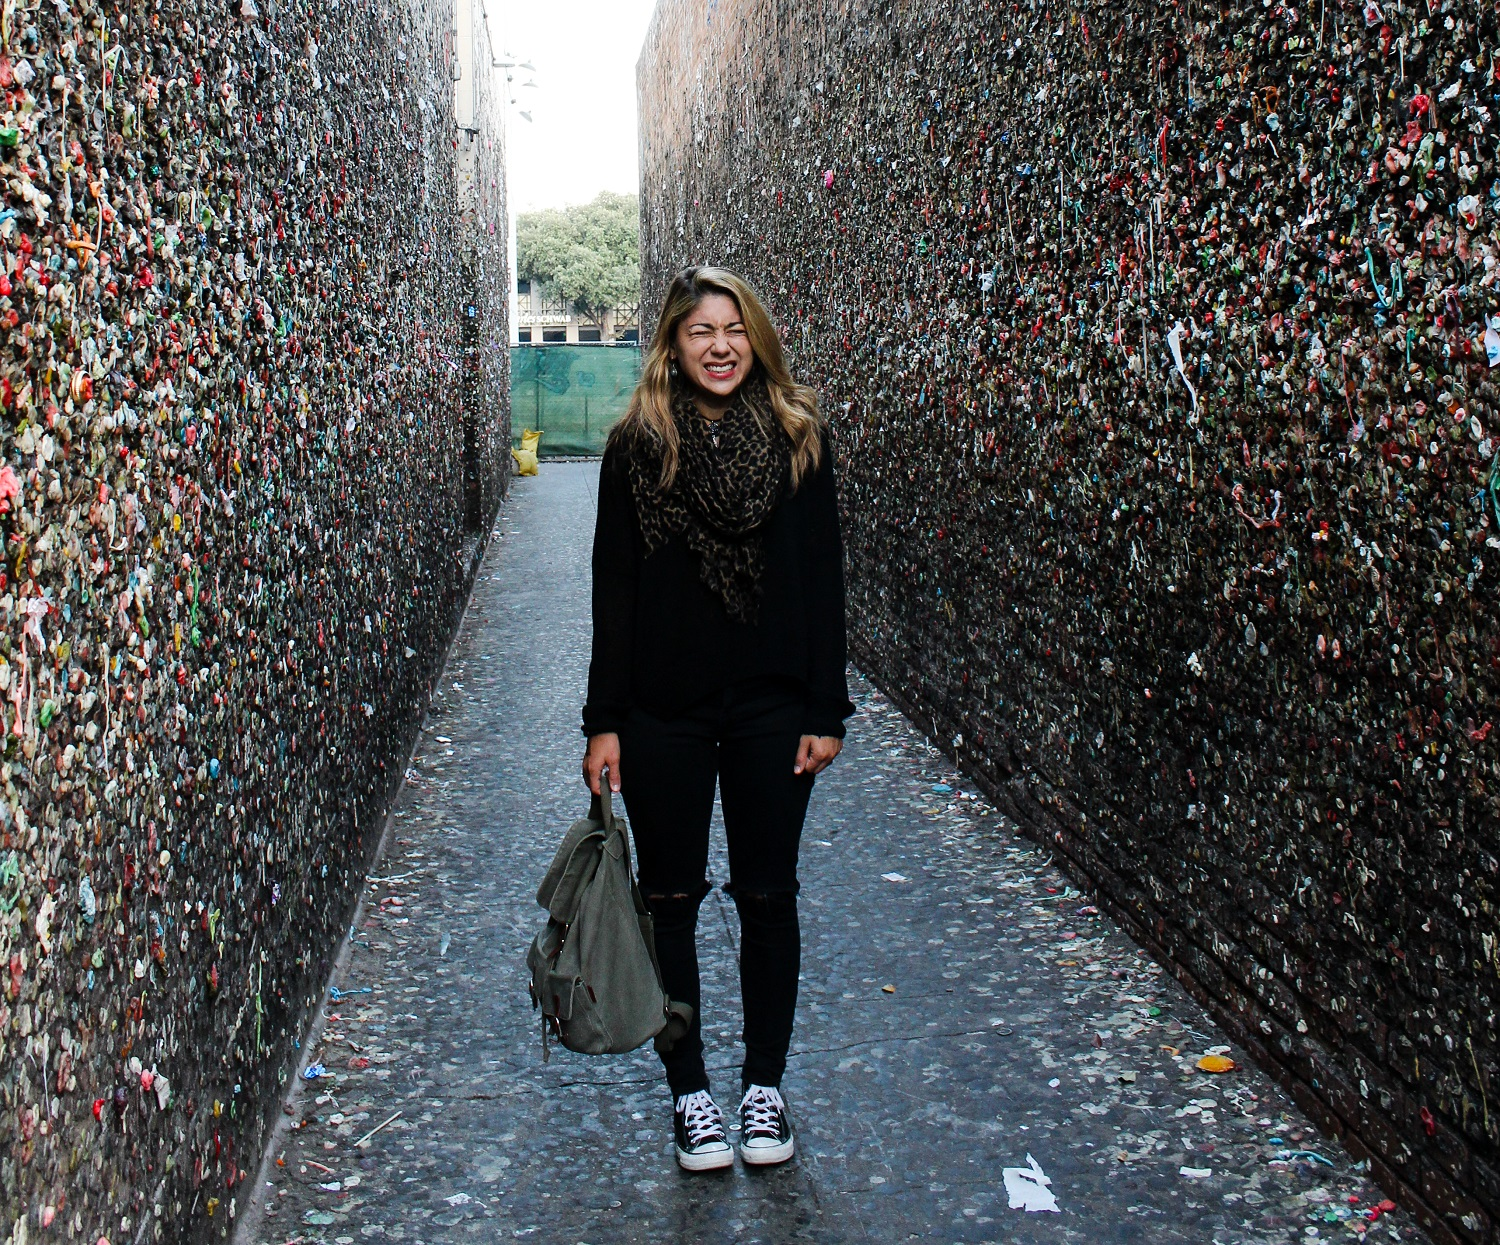 Bubblegum Alley, San Luis Obispo, Pamela Price, travel story